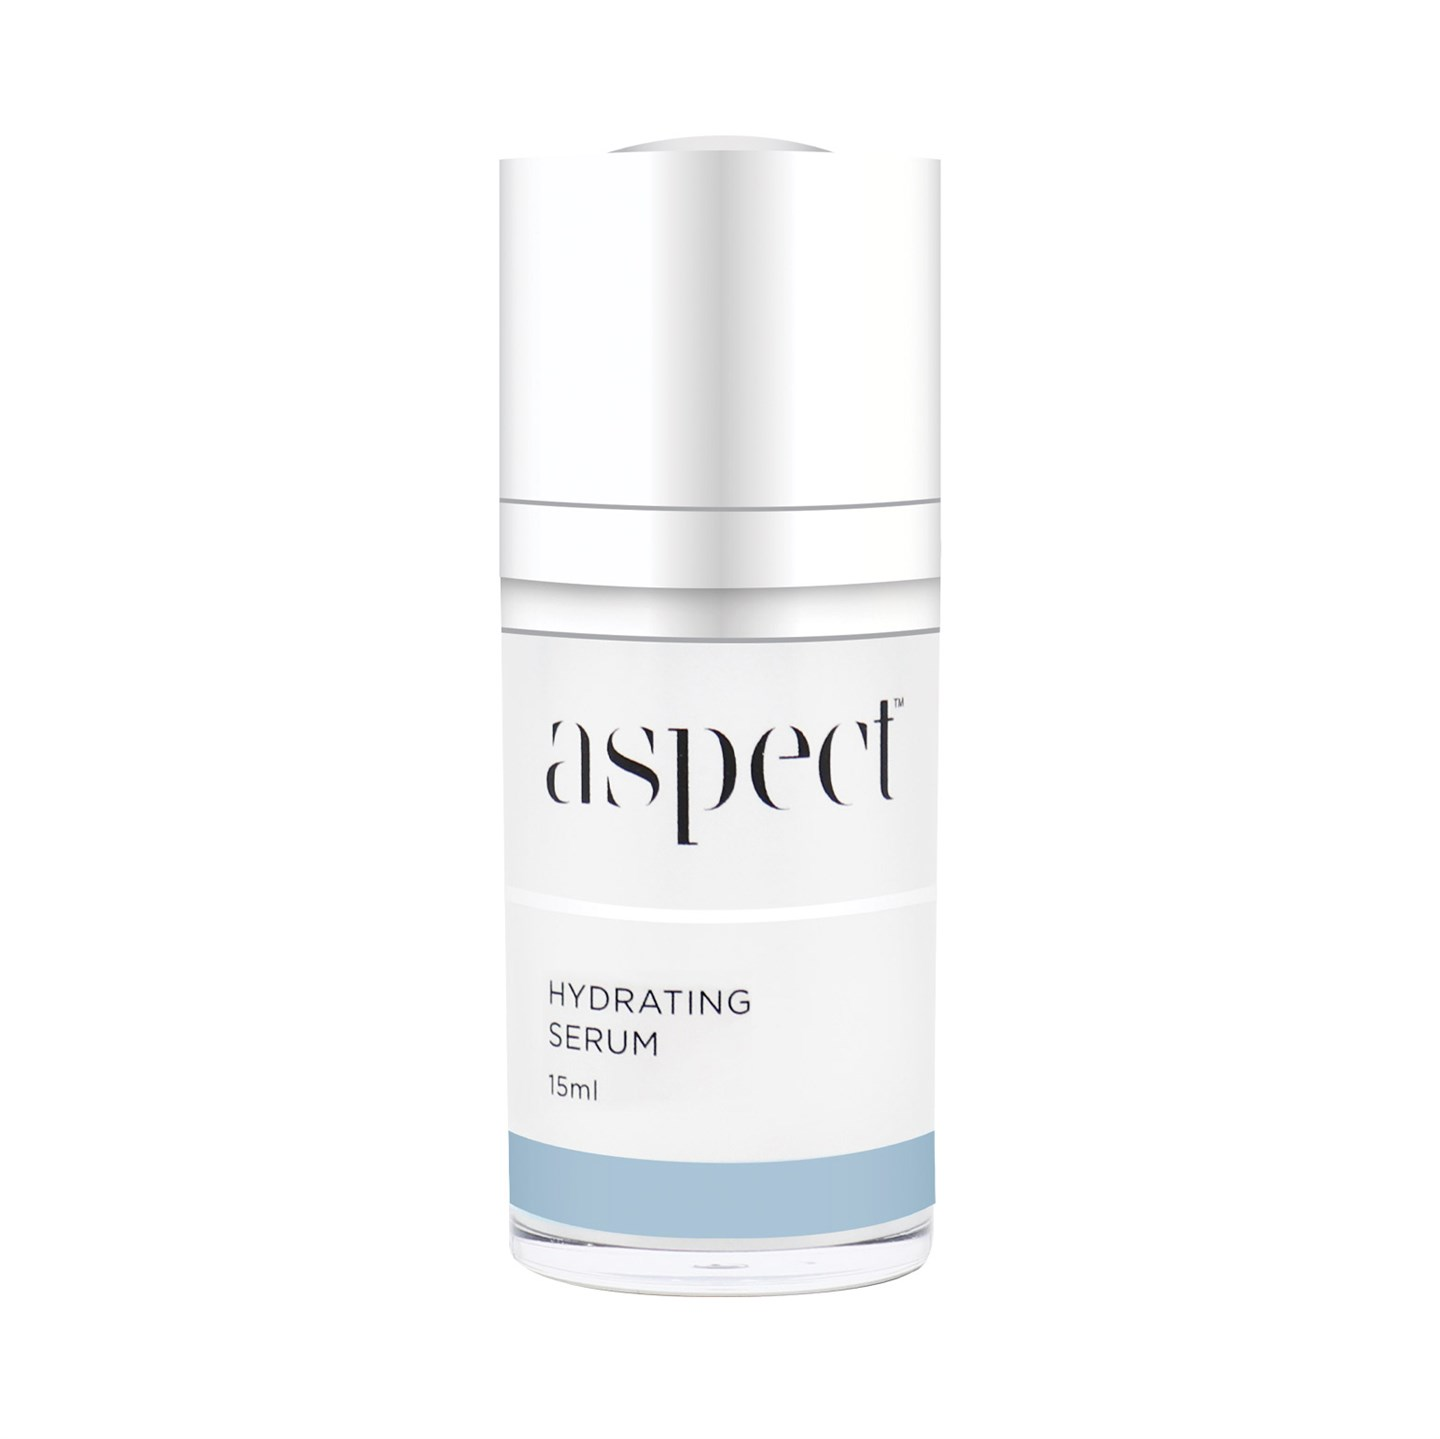 Aspect Hydrating Serum 15ml Travel Size